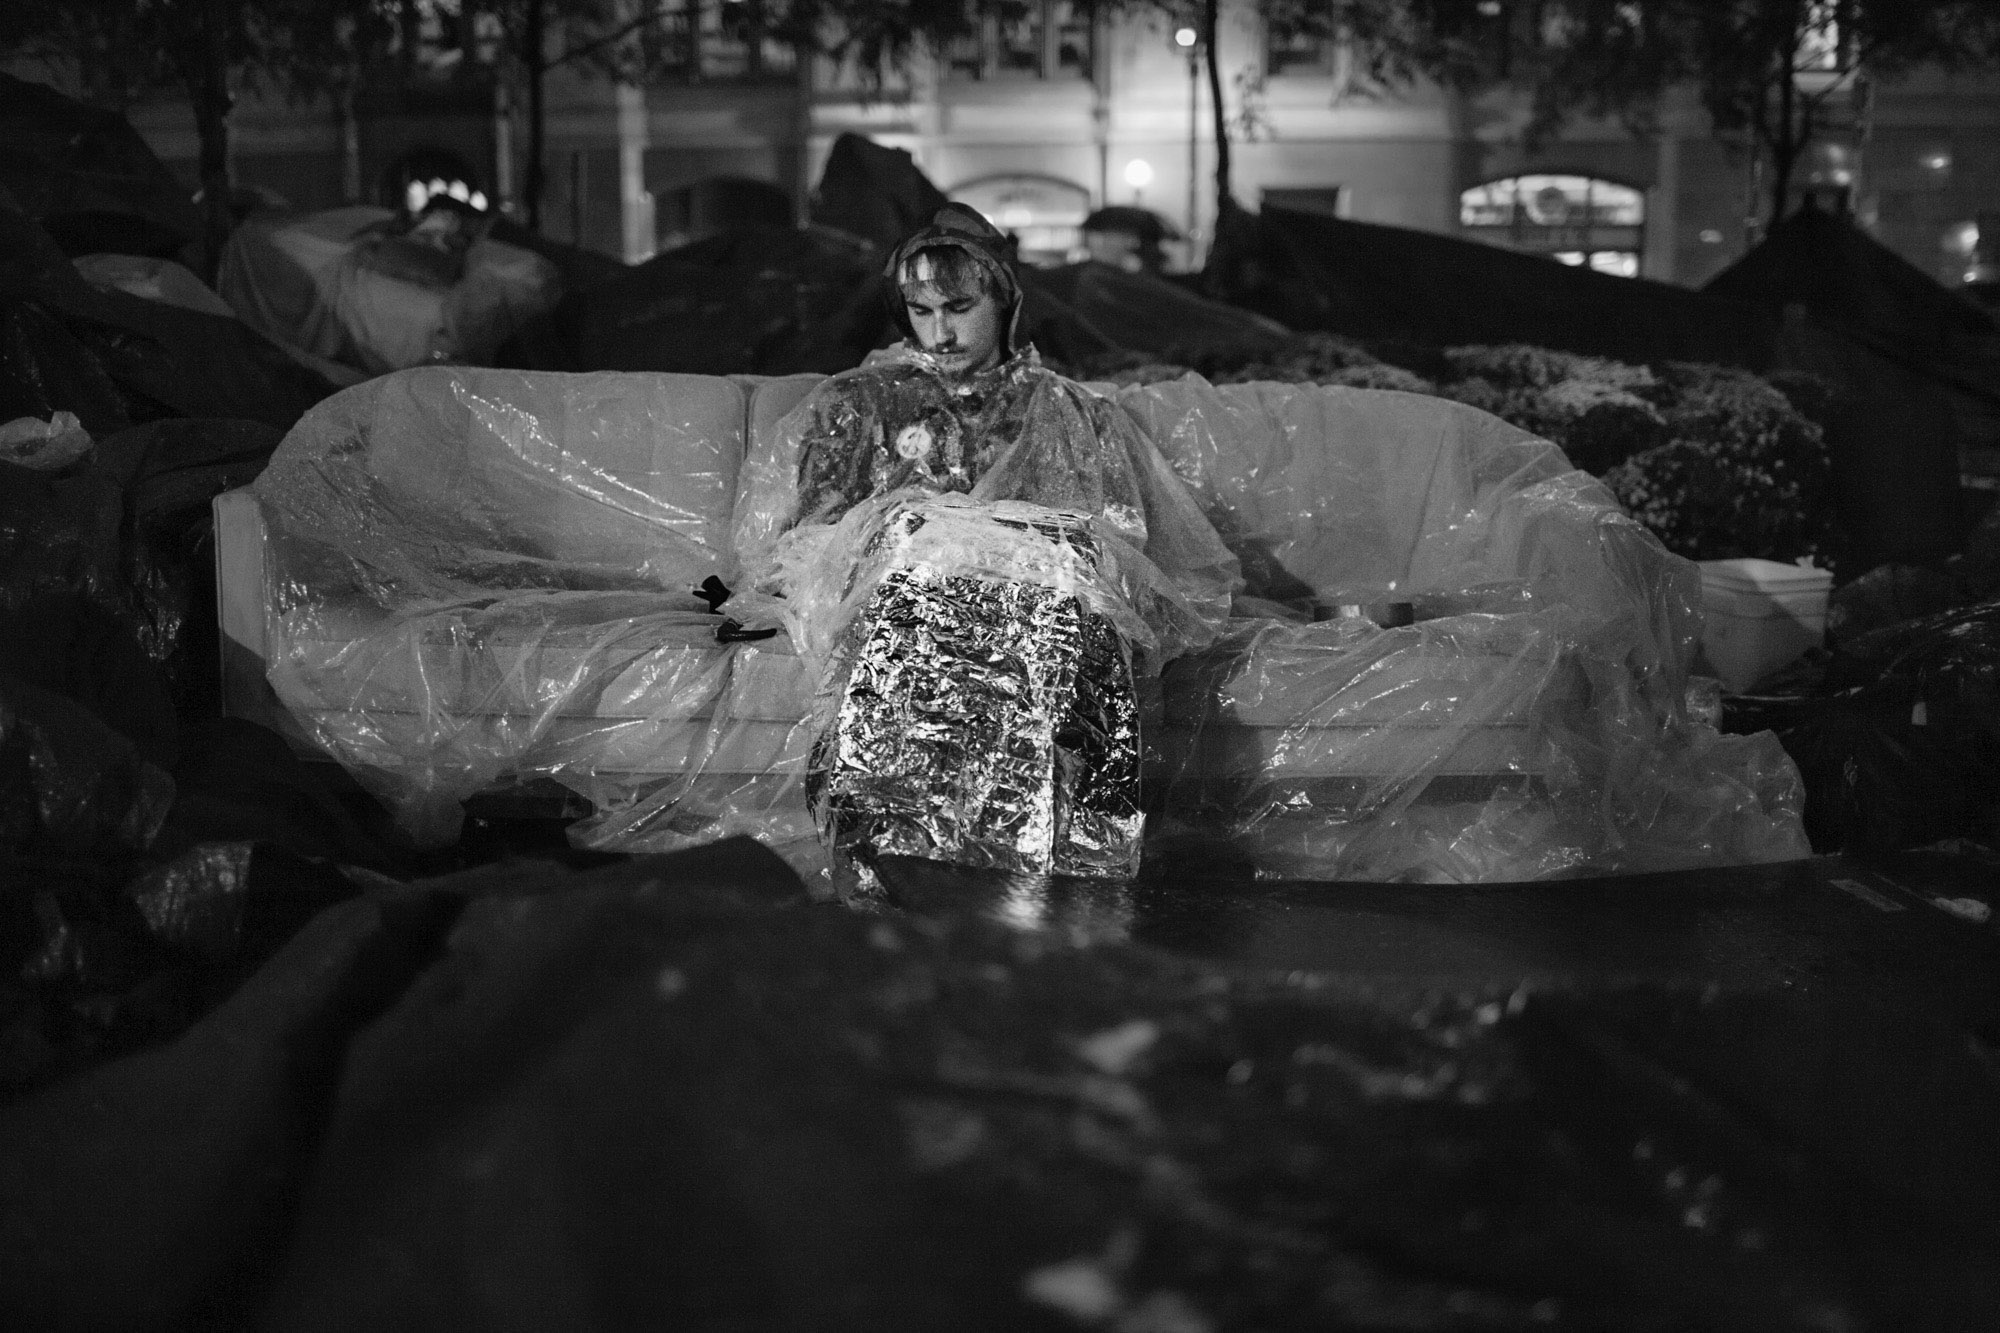 An OWS protestor sleeps sitting upright on a couch, in the rain, in Zuccotti Park.